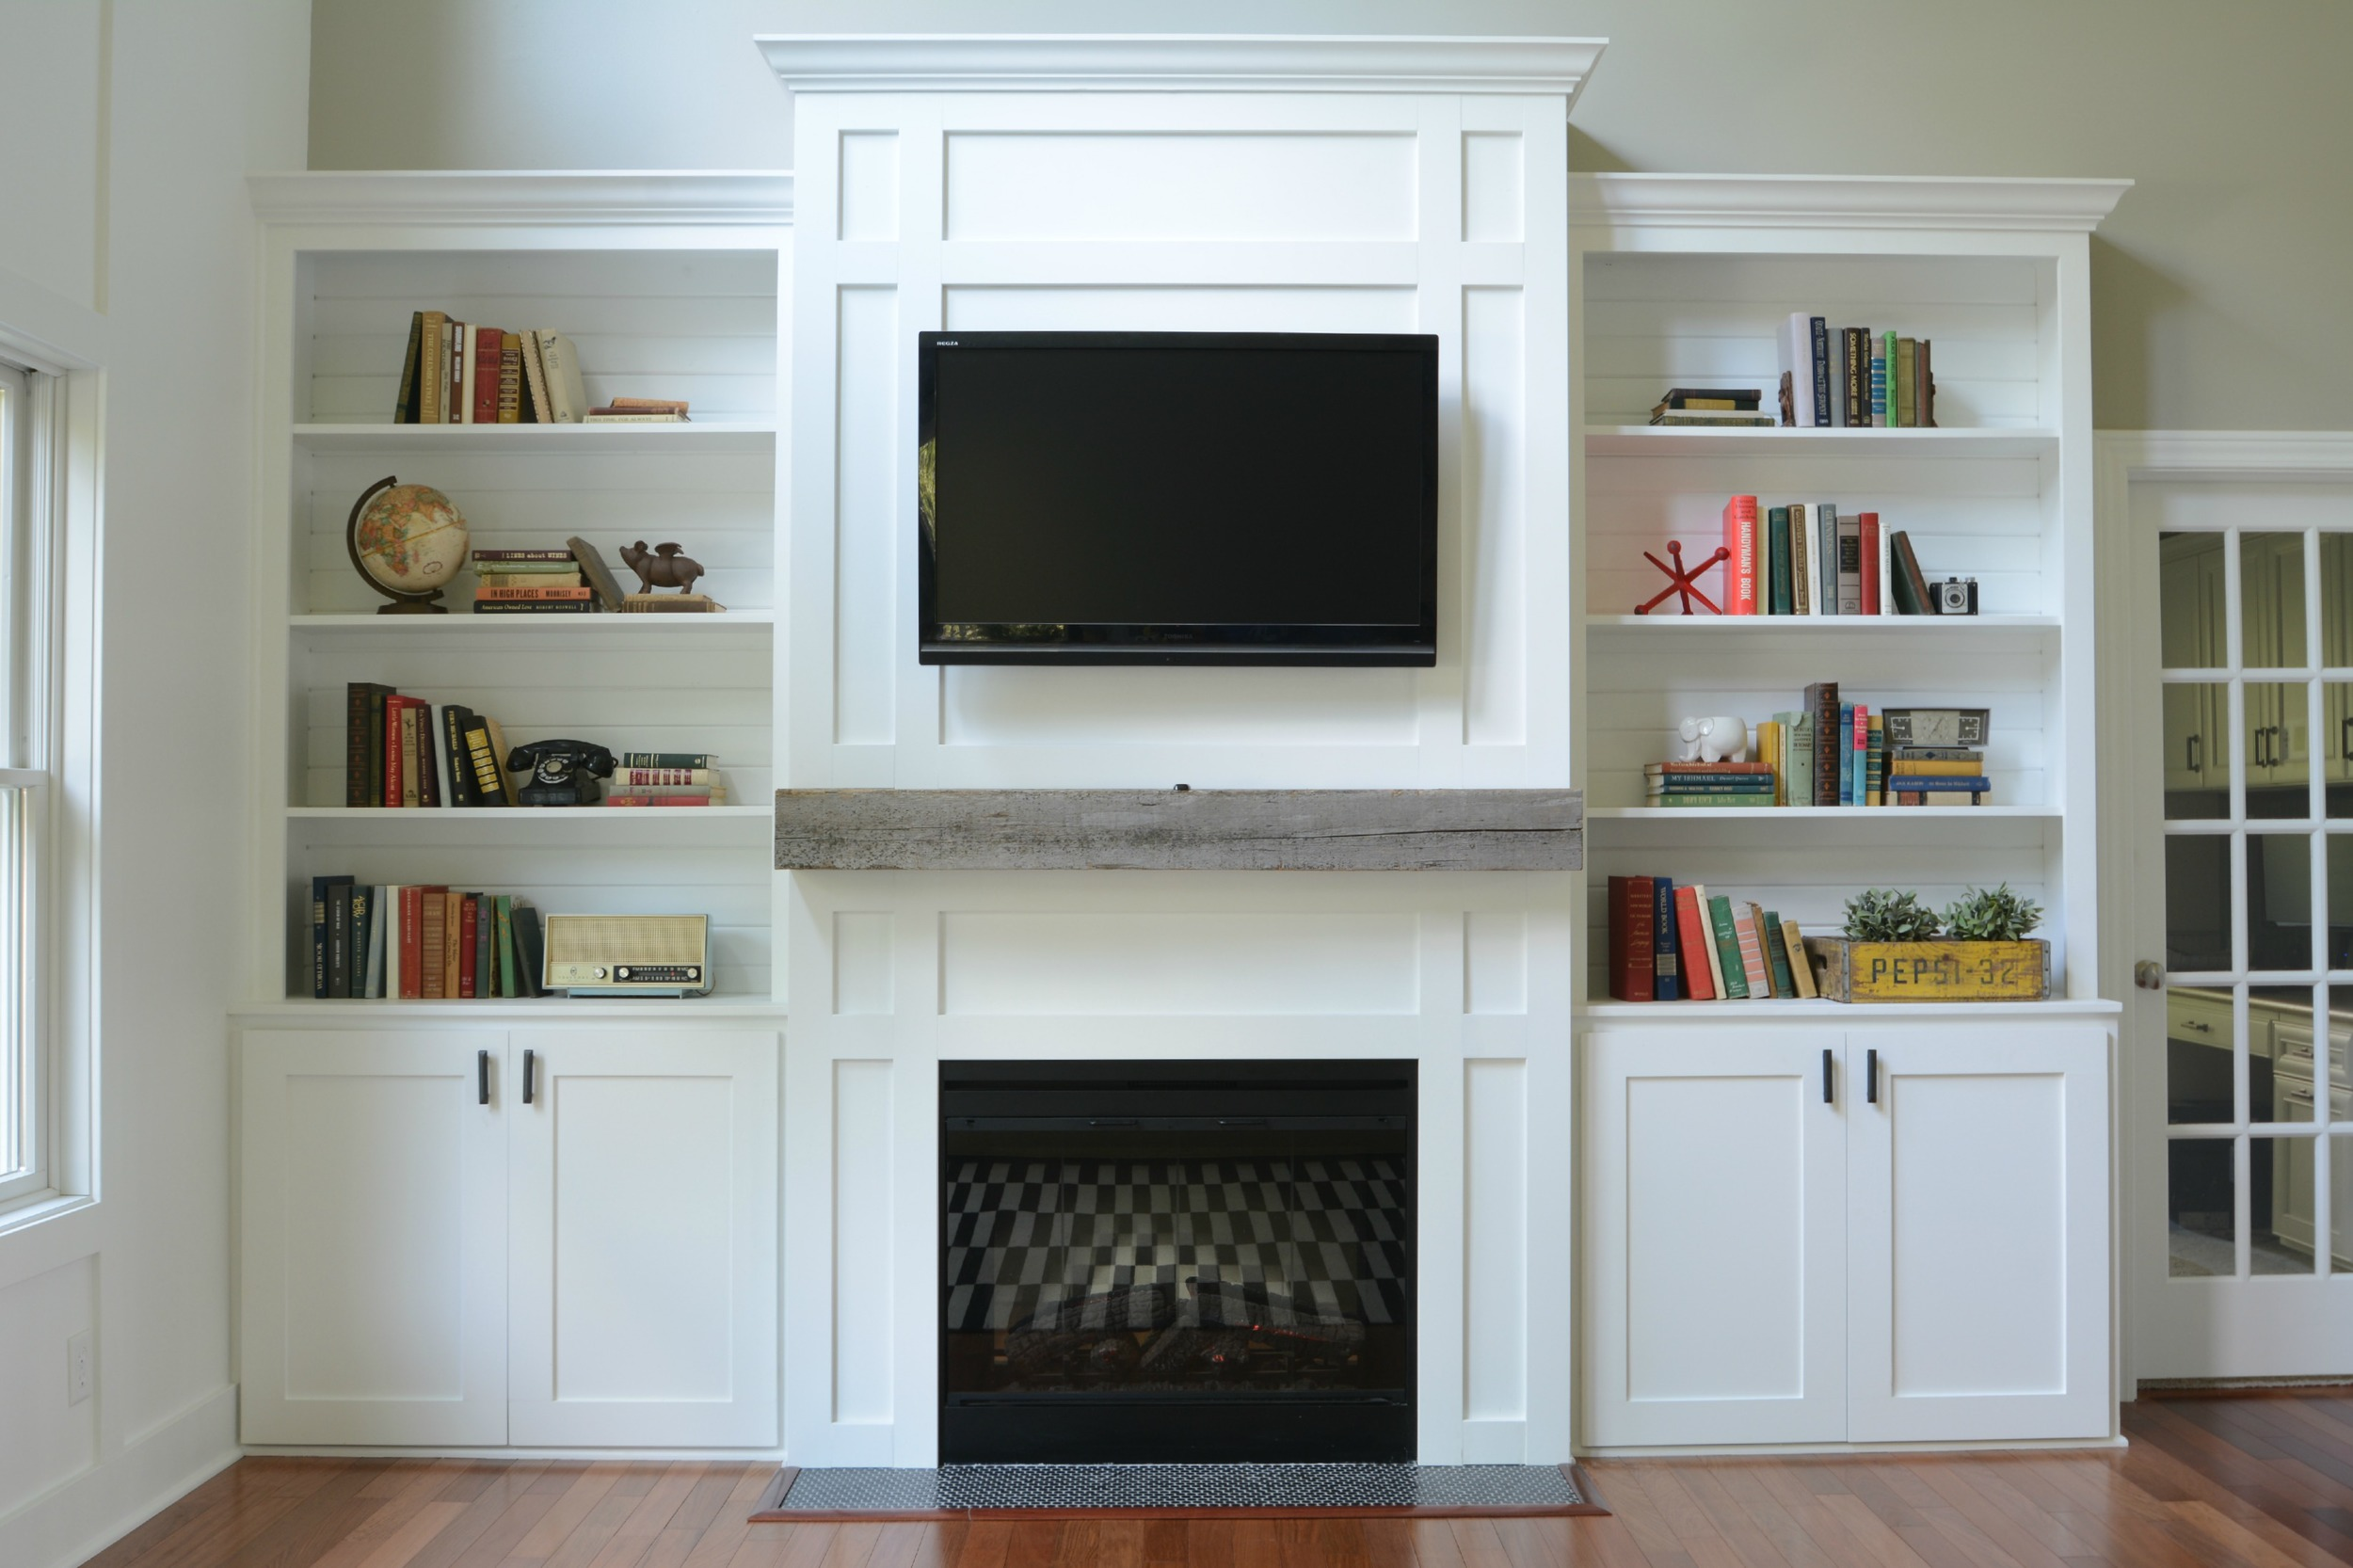 living room built ins tutorial cost decor and the dog rh decorandthedog net cost to build built in shelves cost to make built in shelves